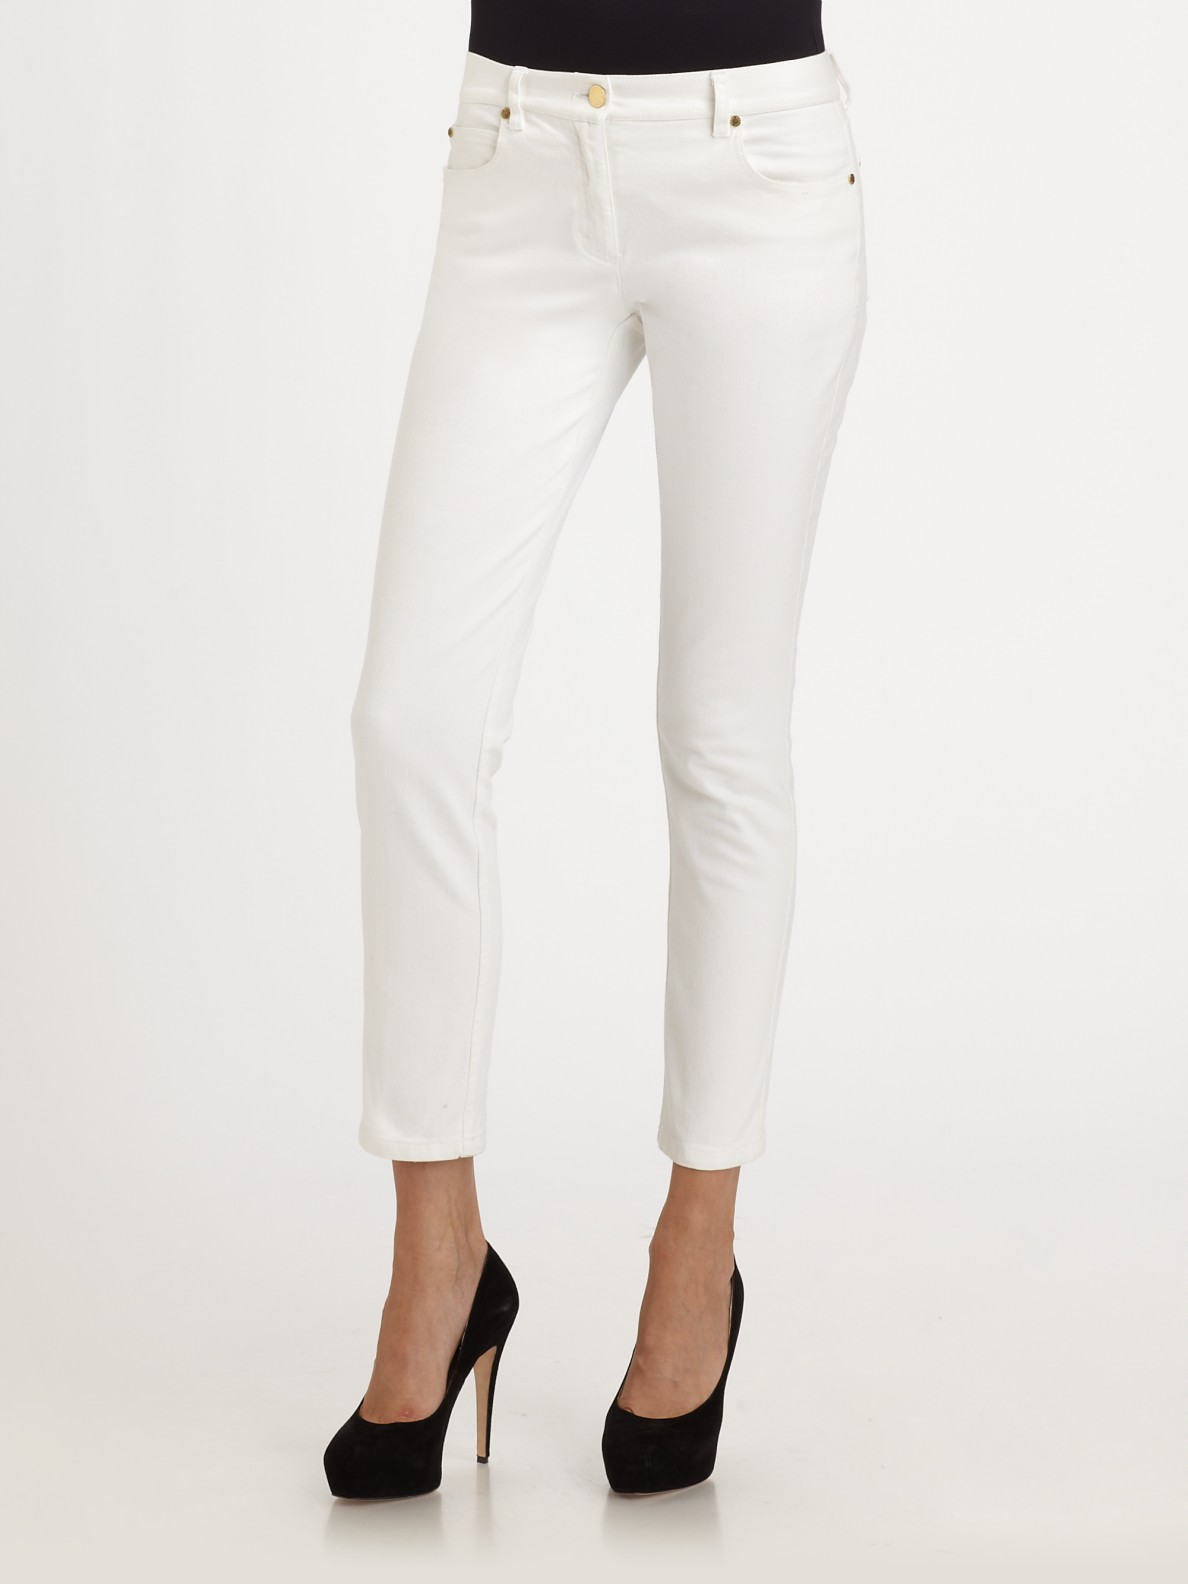 michael kors cropped jeans in white lyst. Black Bedroom Furniture Sets. Home Design Ideas